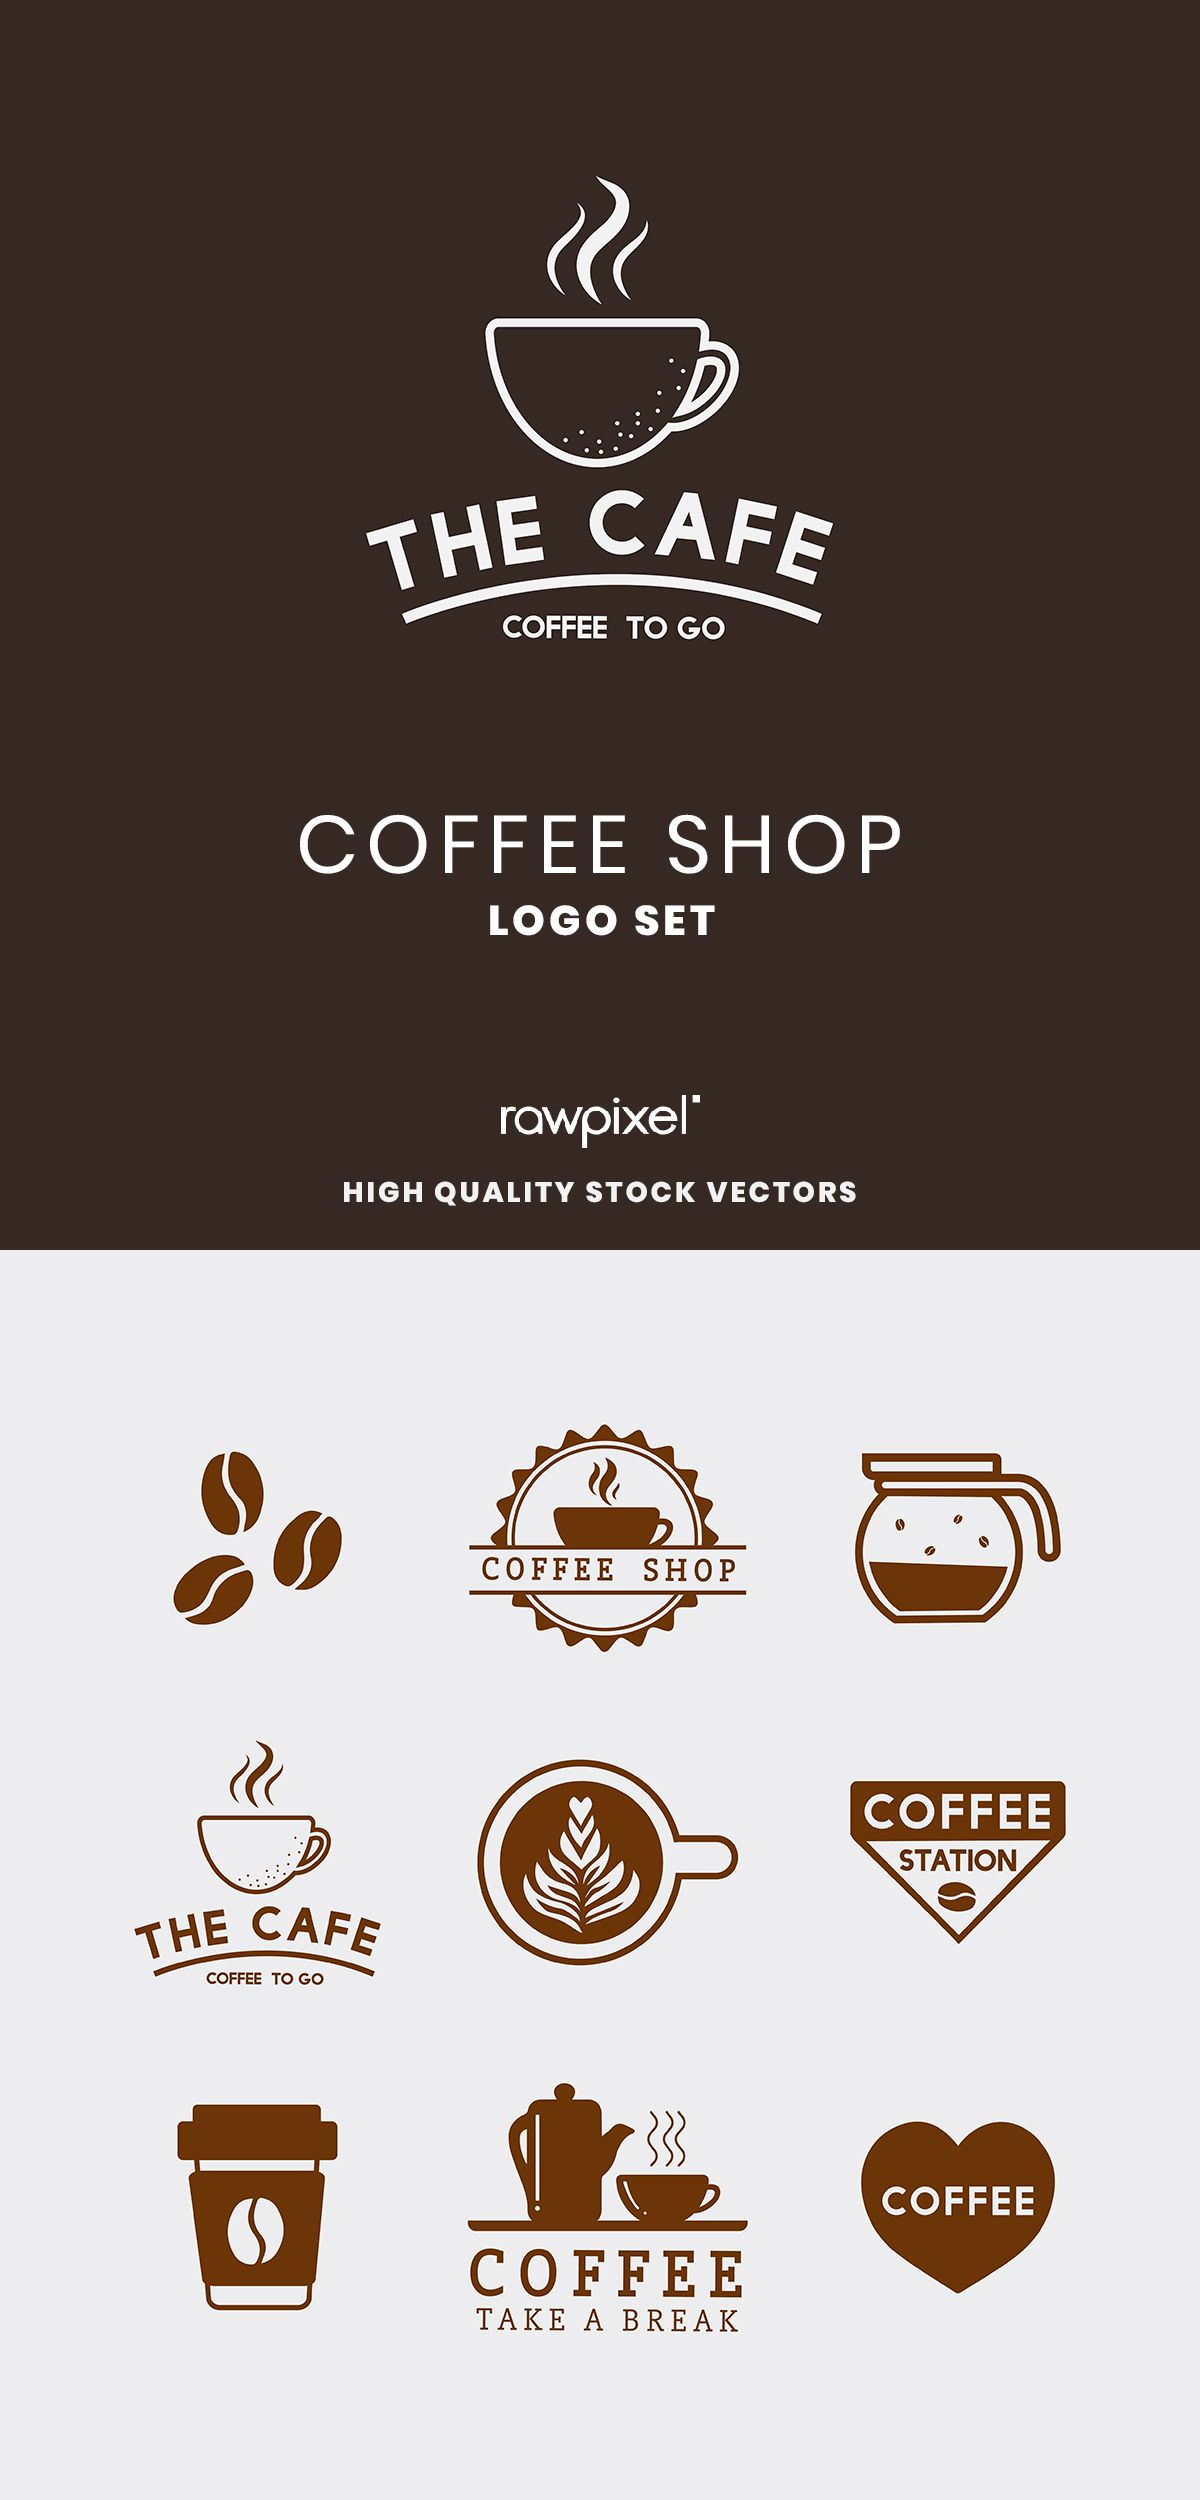 Download These Amazing Royalty Free Coffee Shop Logo Illustrations